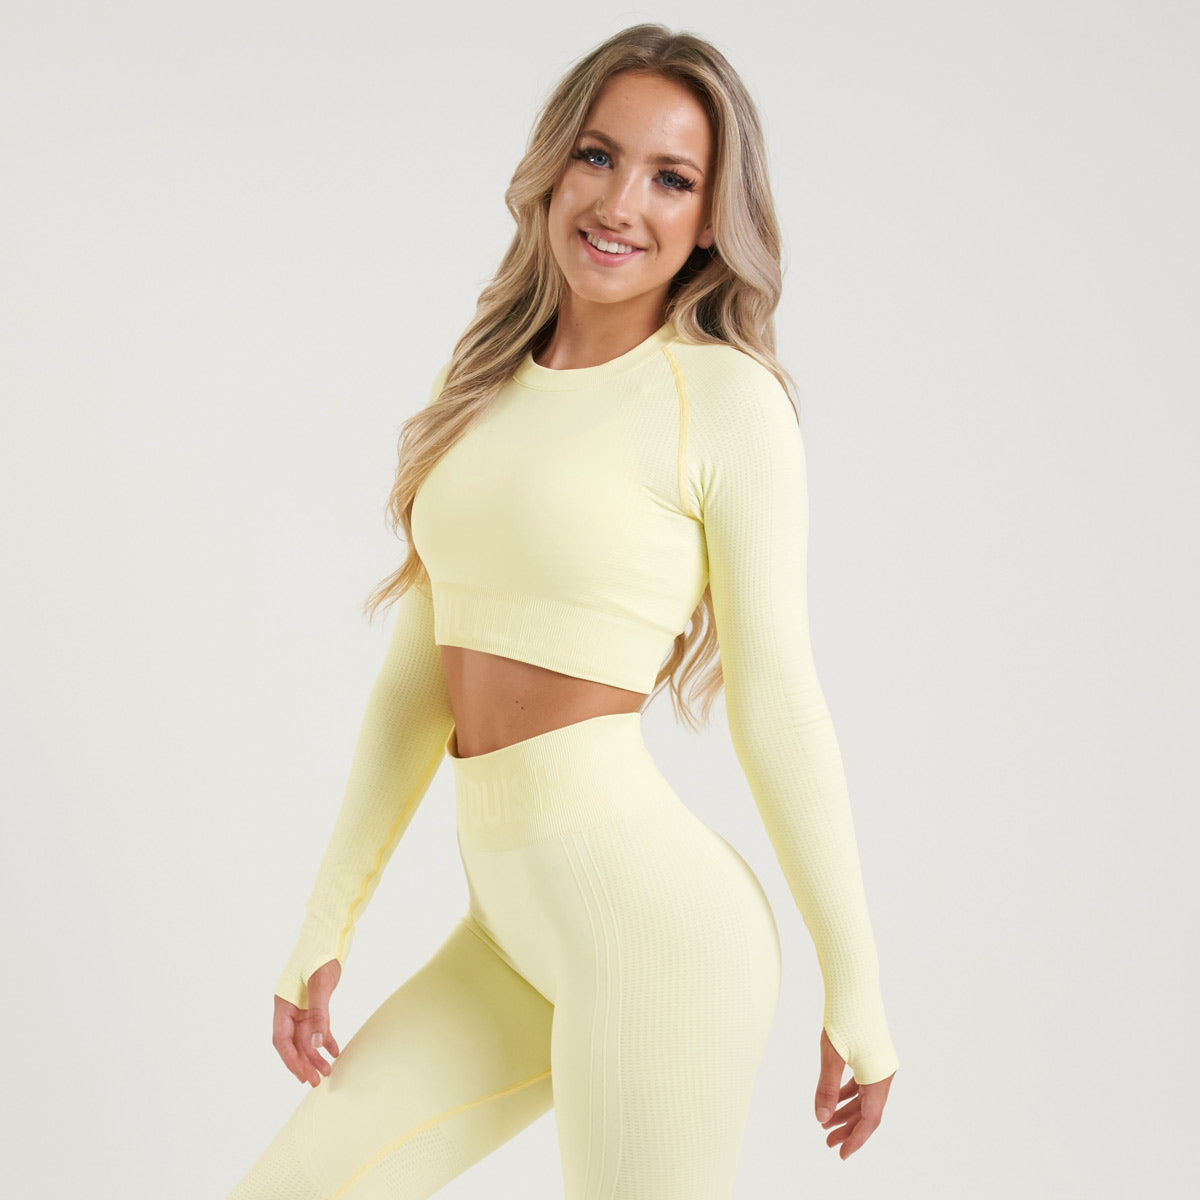 Vanquish Bright Women's Soft Lemon Seamless Long Sleeve Crop Top